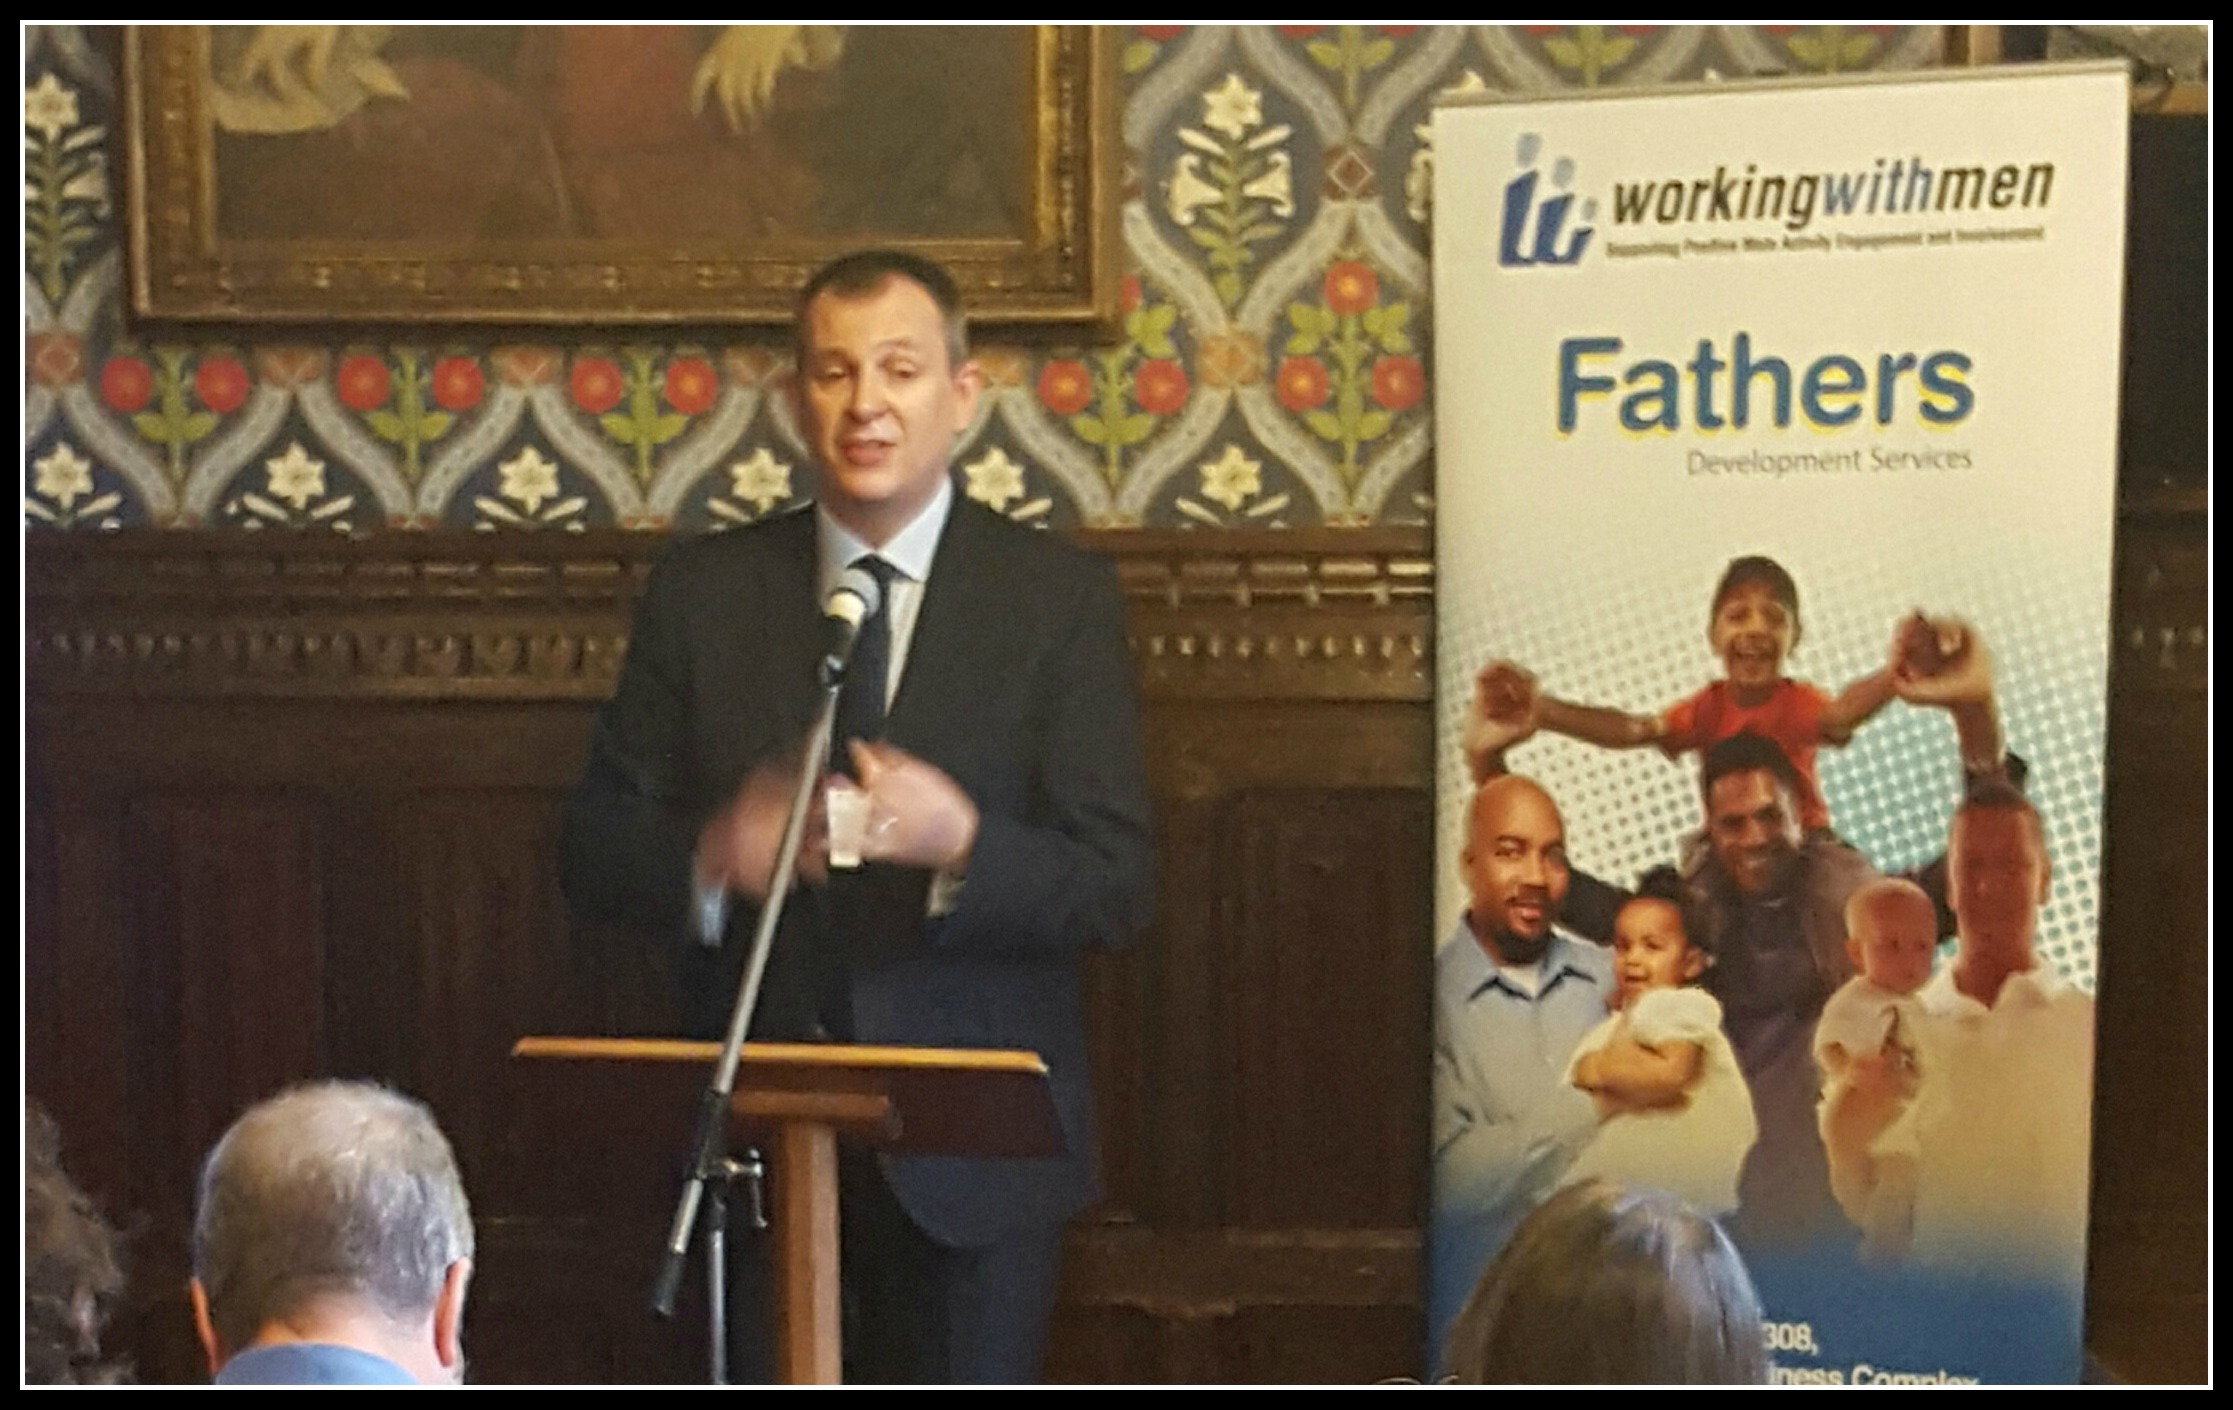 The relaunched All Party Parliamentary Group on Fatherhood